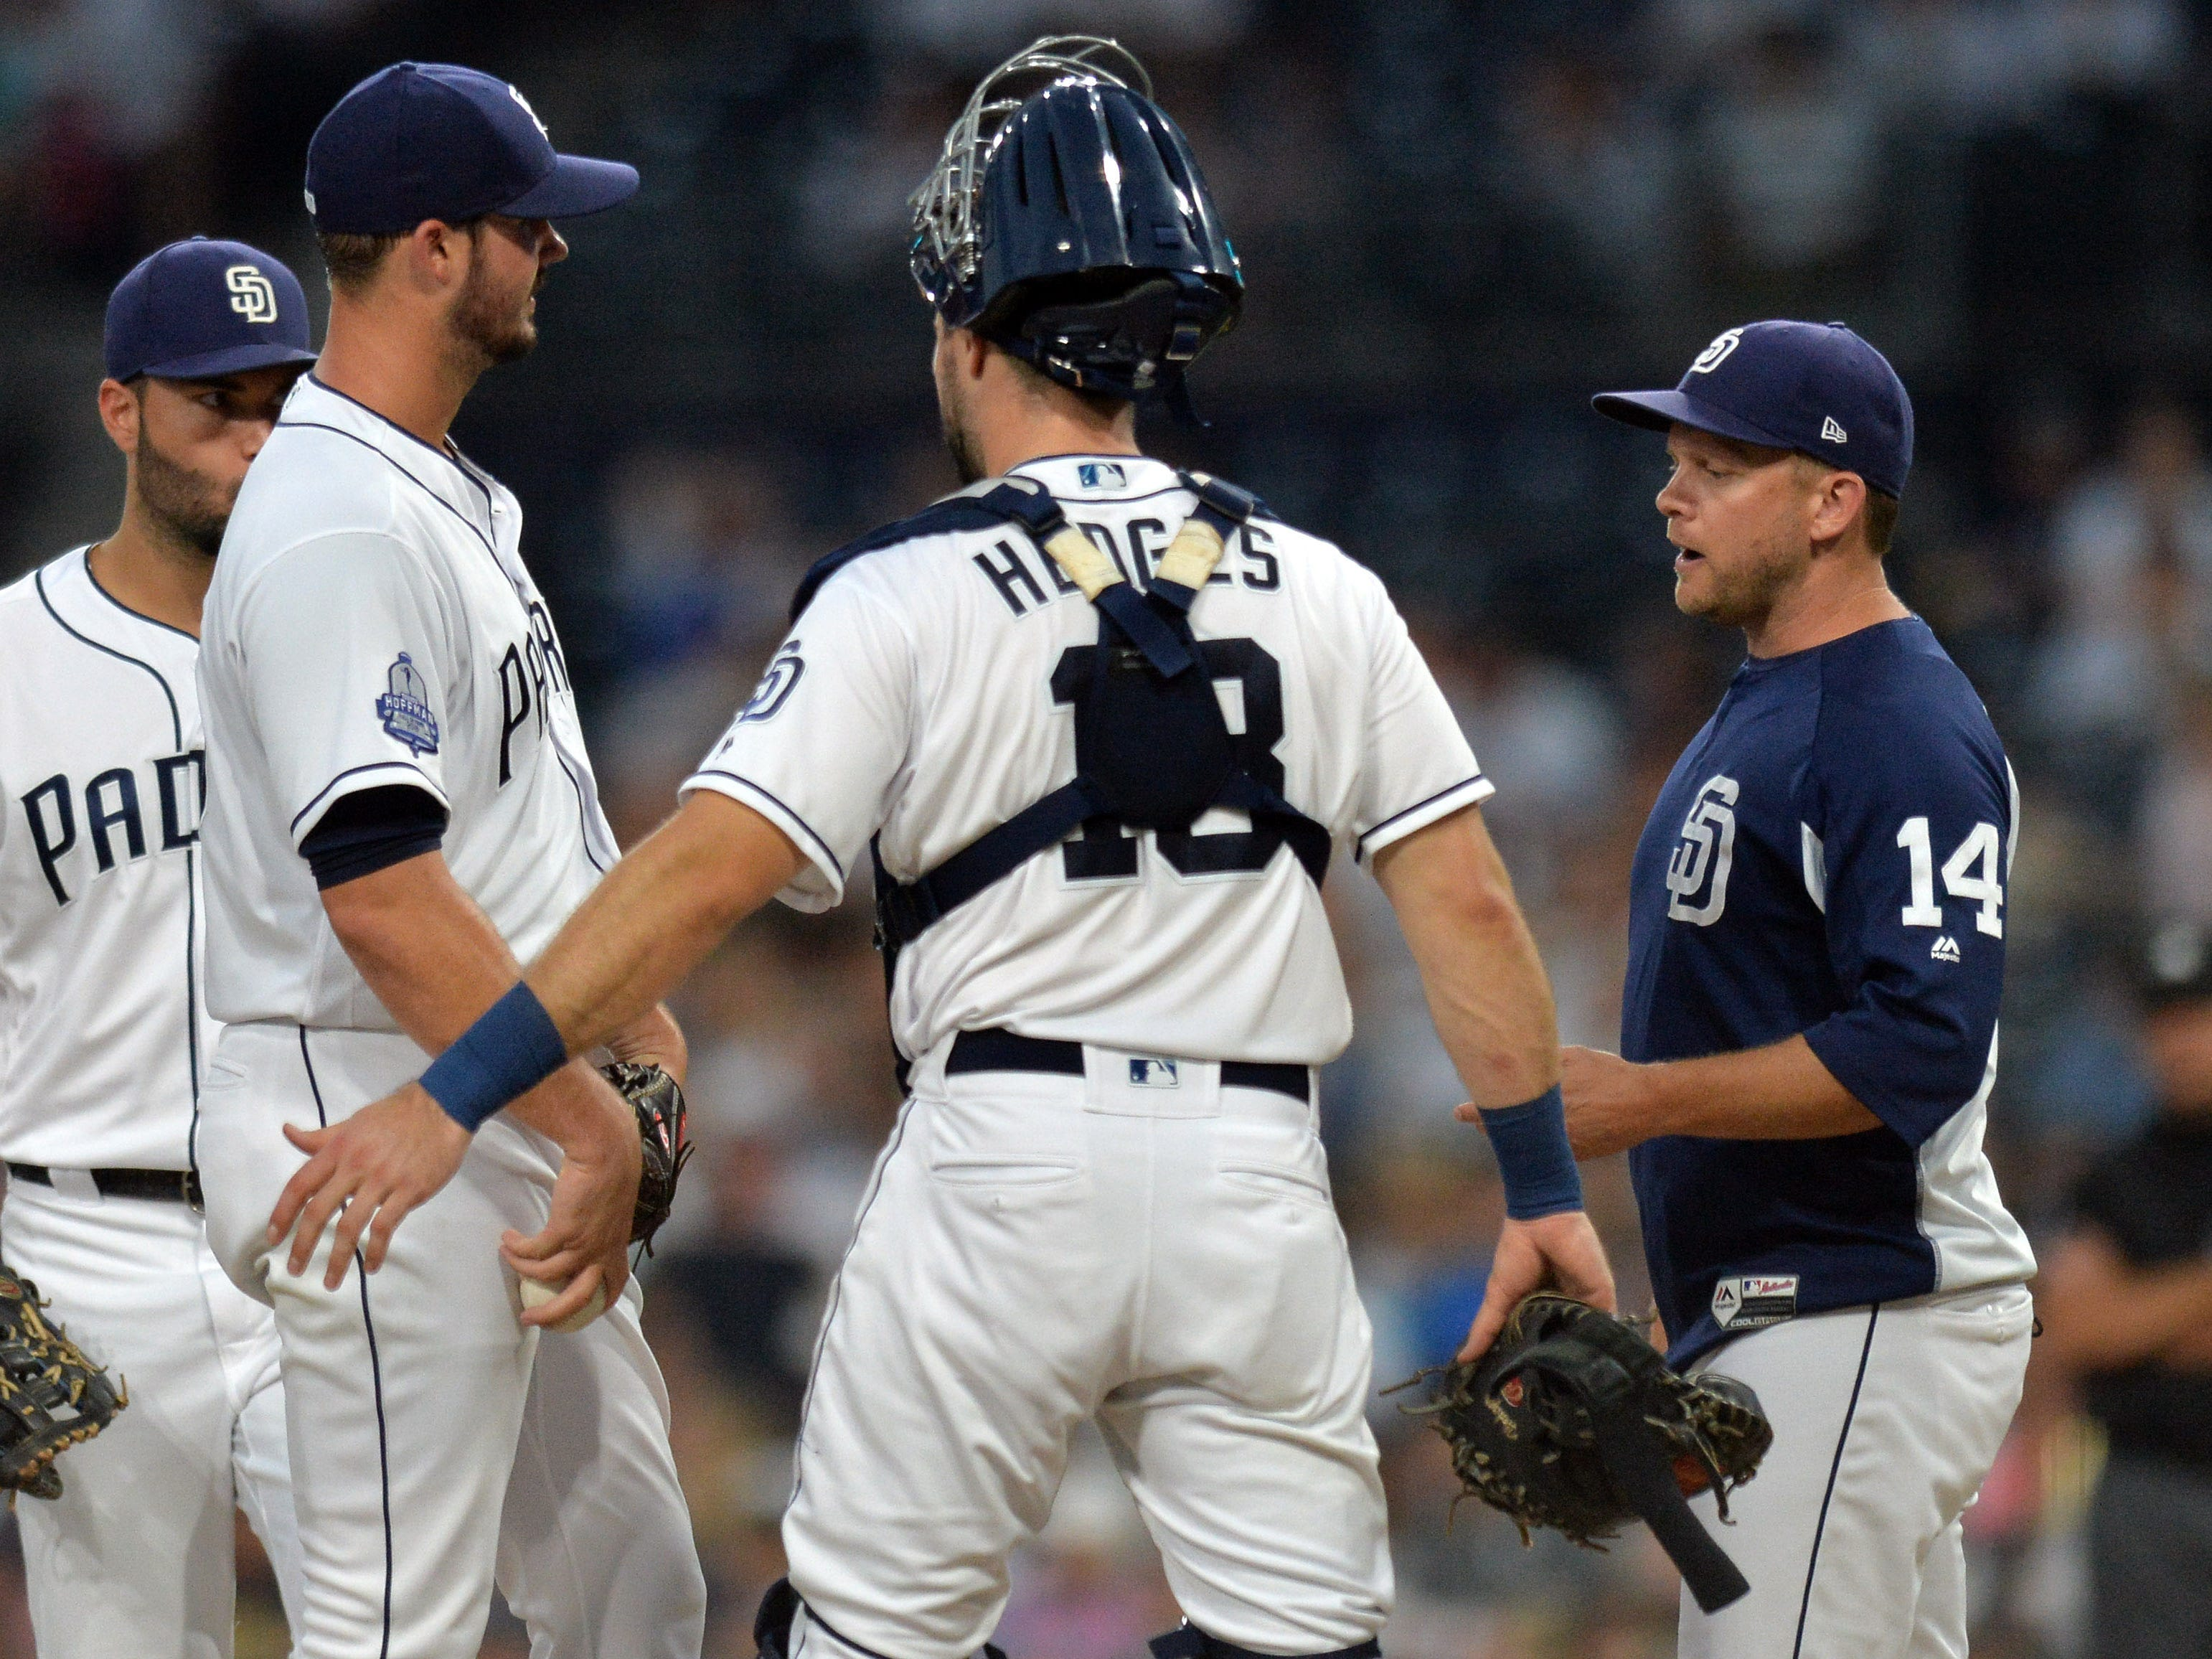 Aug 16, 2018; San Diego, CA, USA; San Diego Padres manager Andy Green (14) takes San Diego Padres starting pitcher Jacob Nix (one from left) out of the game after giving up five runs in the first inning against the Arizona Diamondbacks at Petco Park.